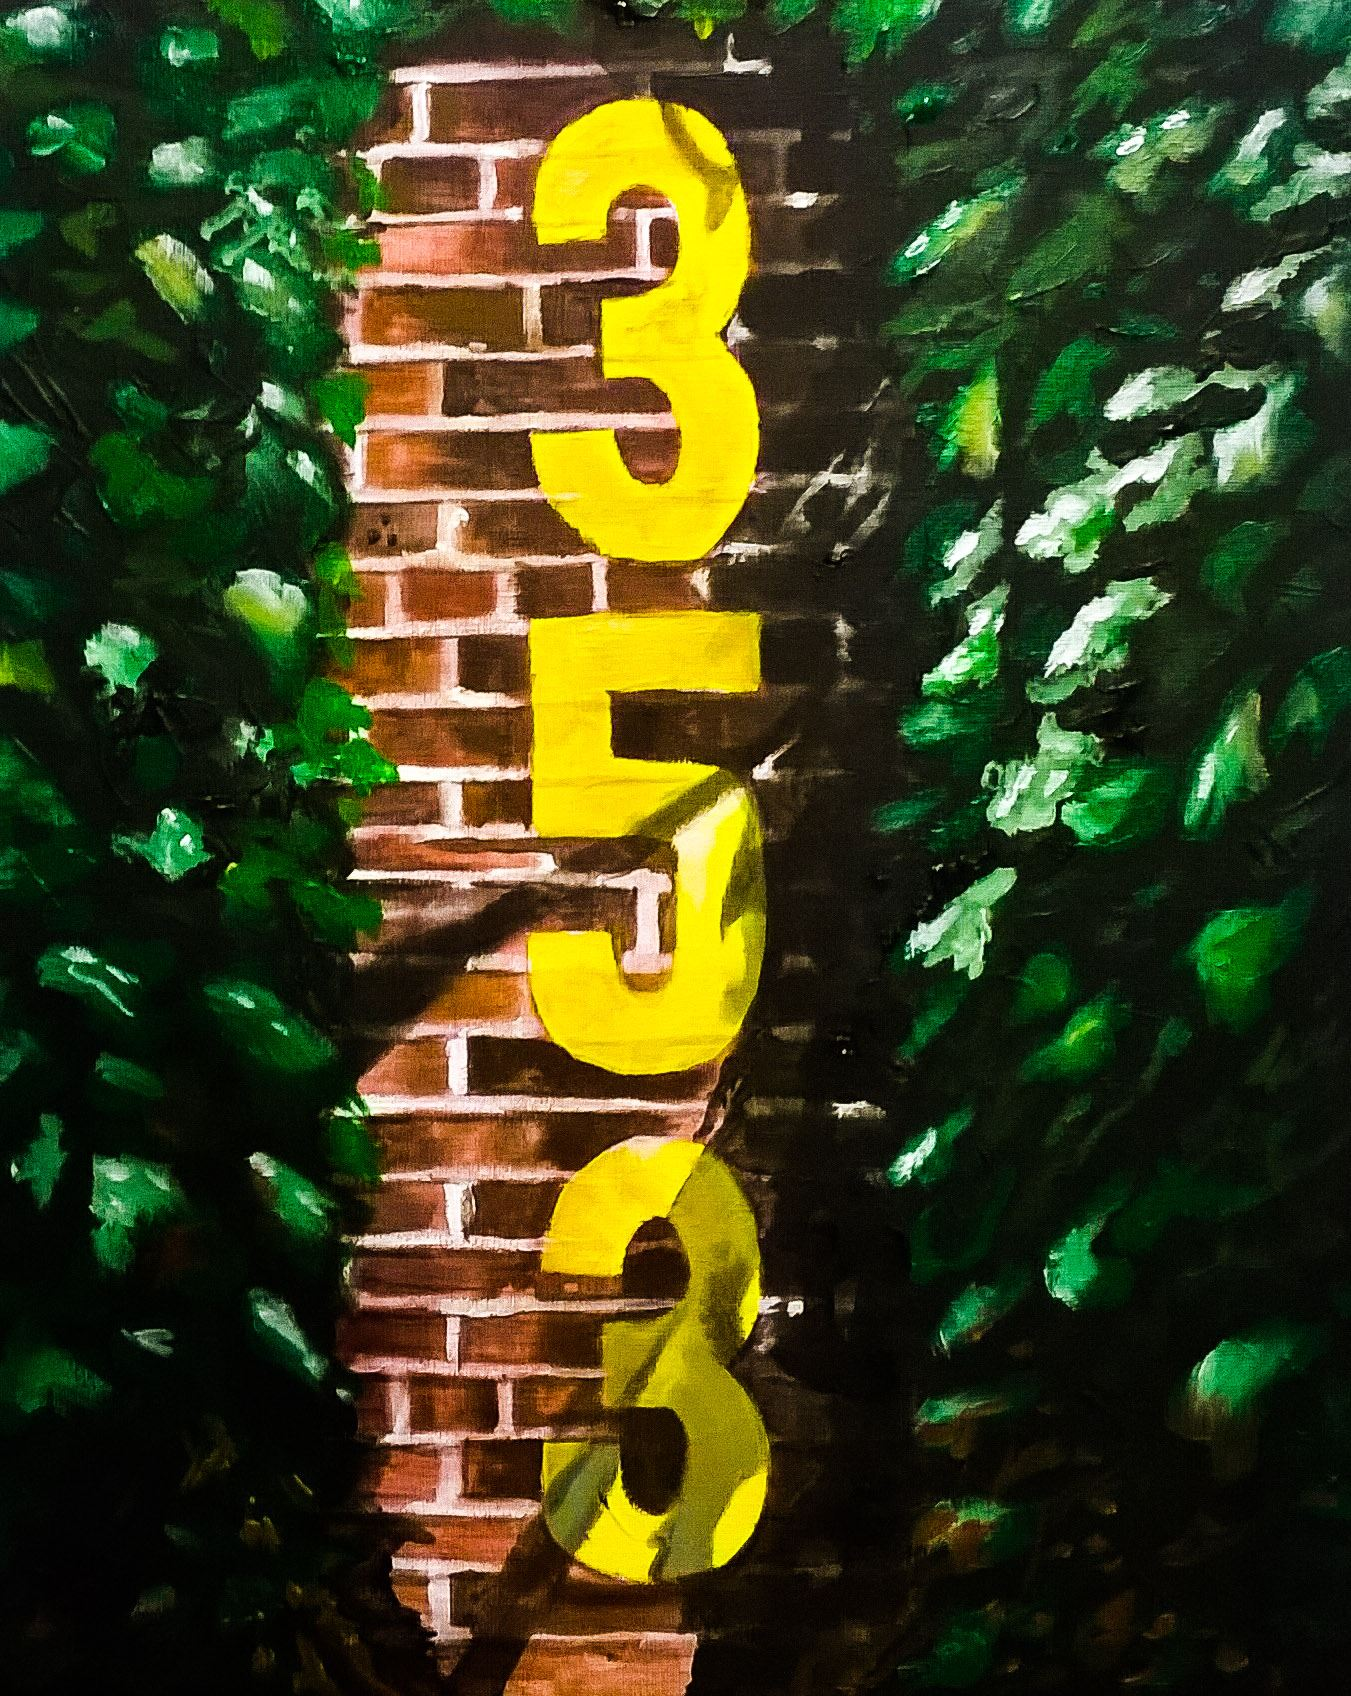 A4 Wrigley 353 Marker - Sip and Paint Parties in Bartlett, IL